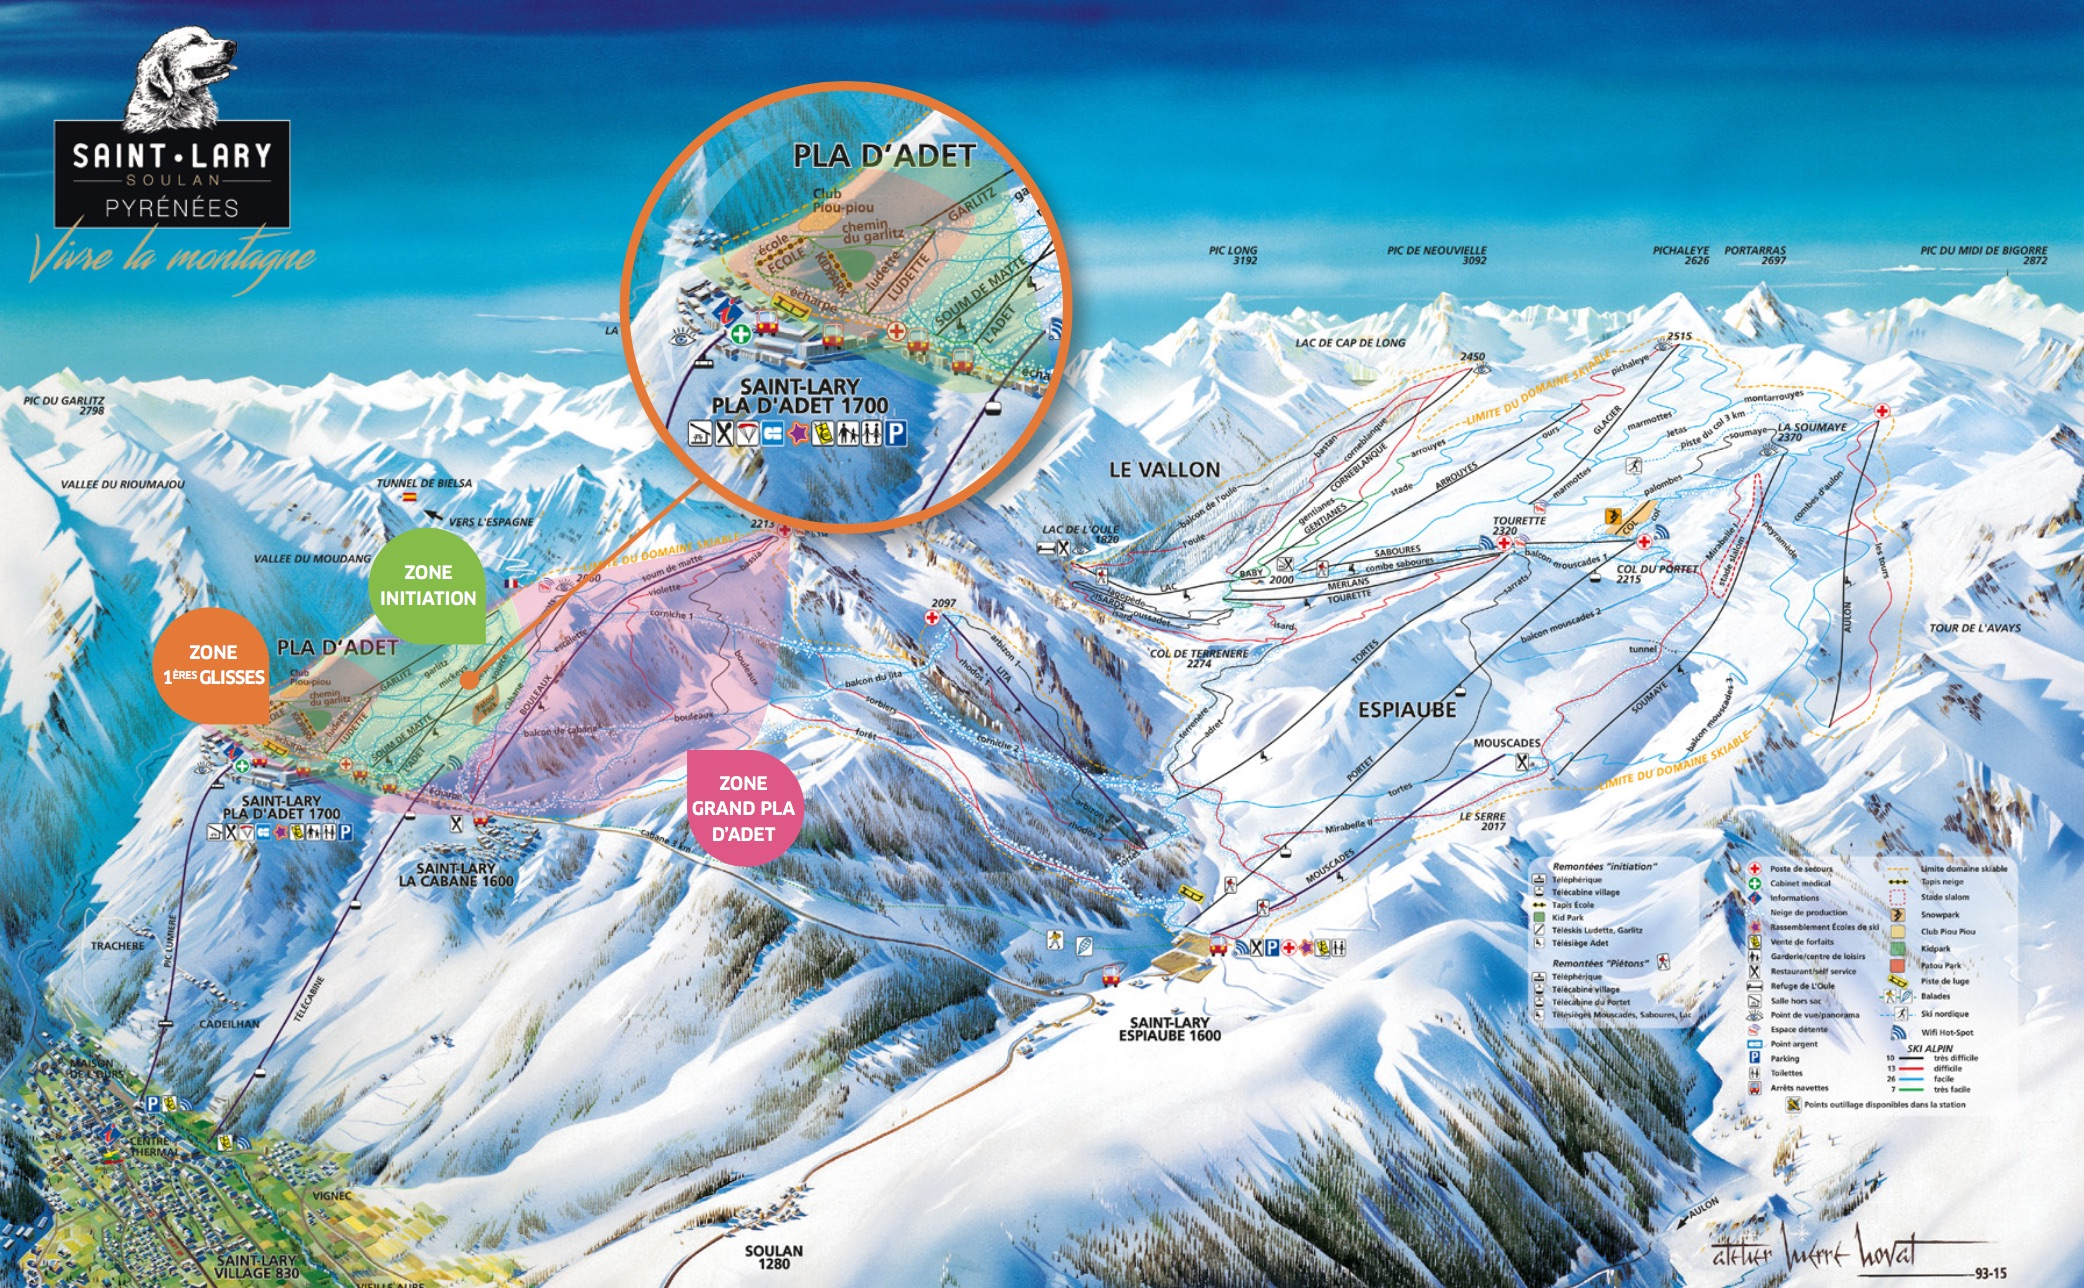 saint-lary-piste-map